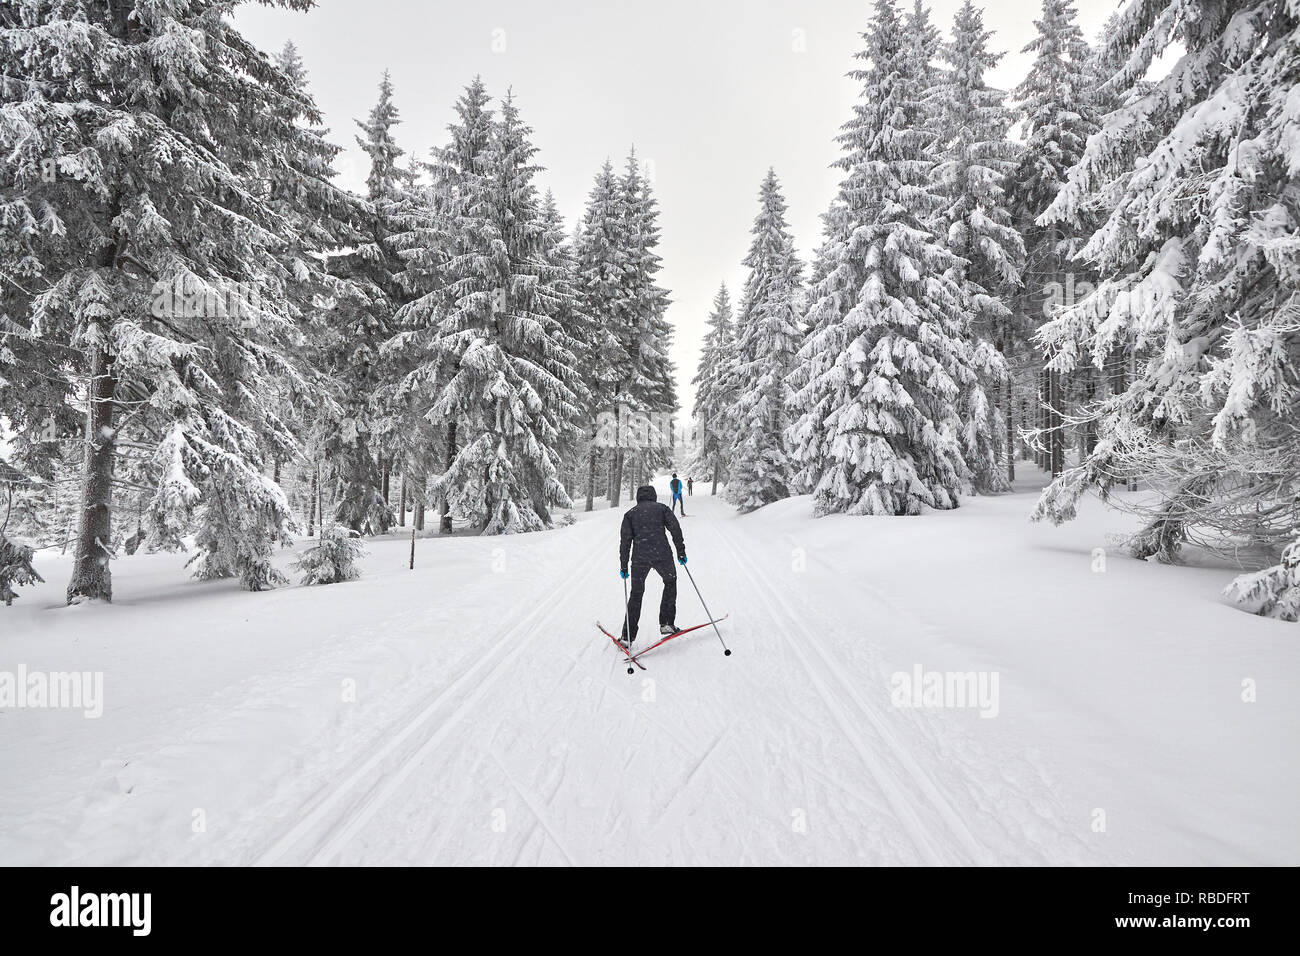 Cross-country skiers on trail after heavy snowfalls, Jakuszyce, Poland. - Stock Image